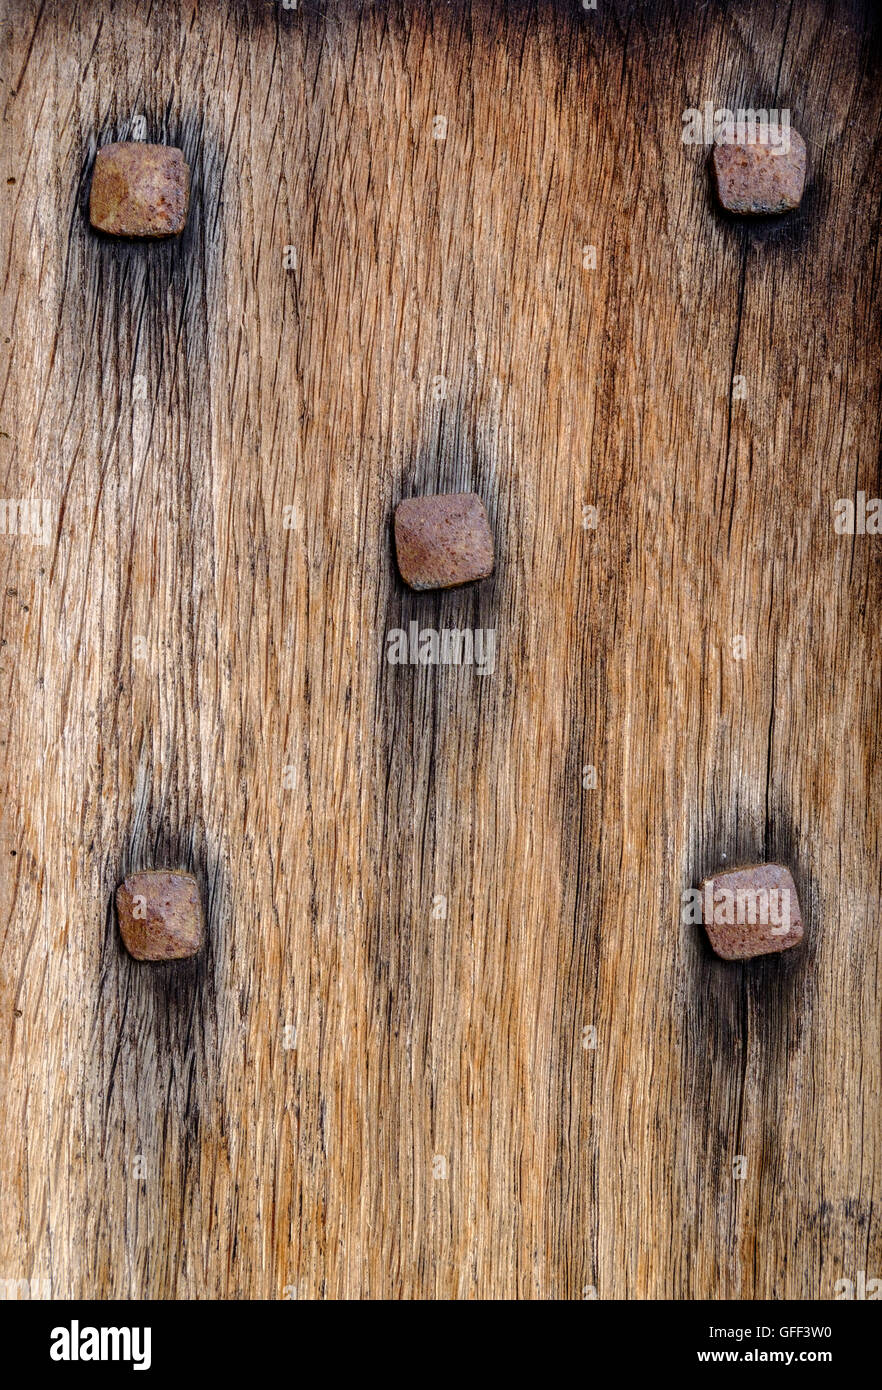 Section of ancient wooden door with five rusty metal nail heads studded across textured wood like a domino - Stock Image